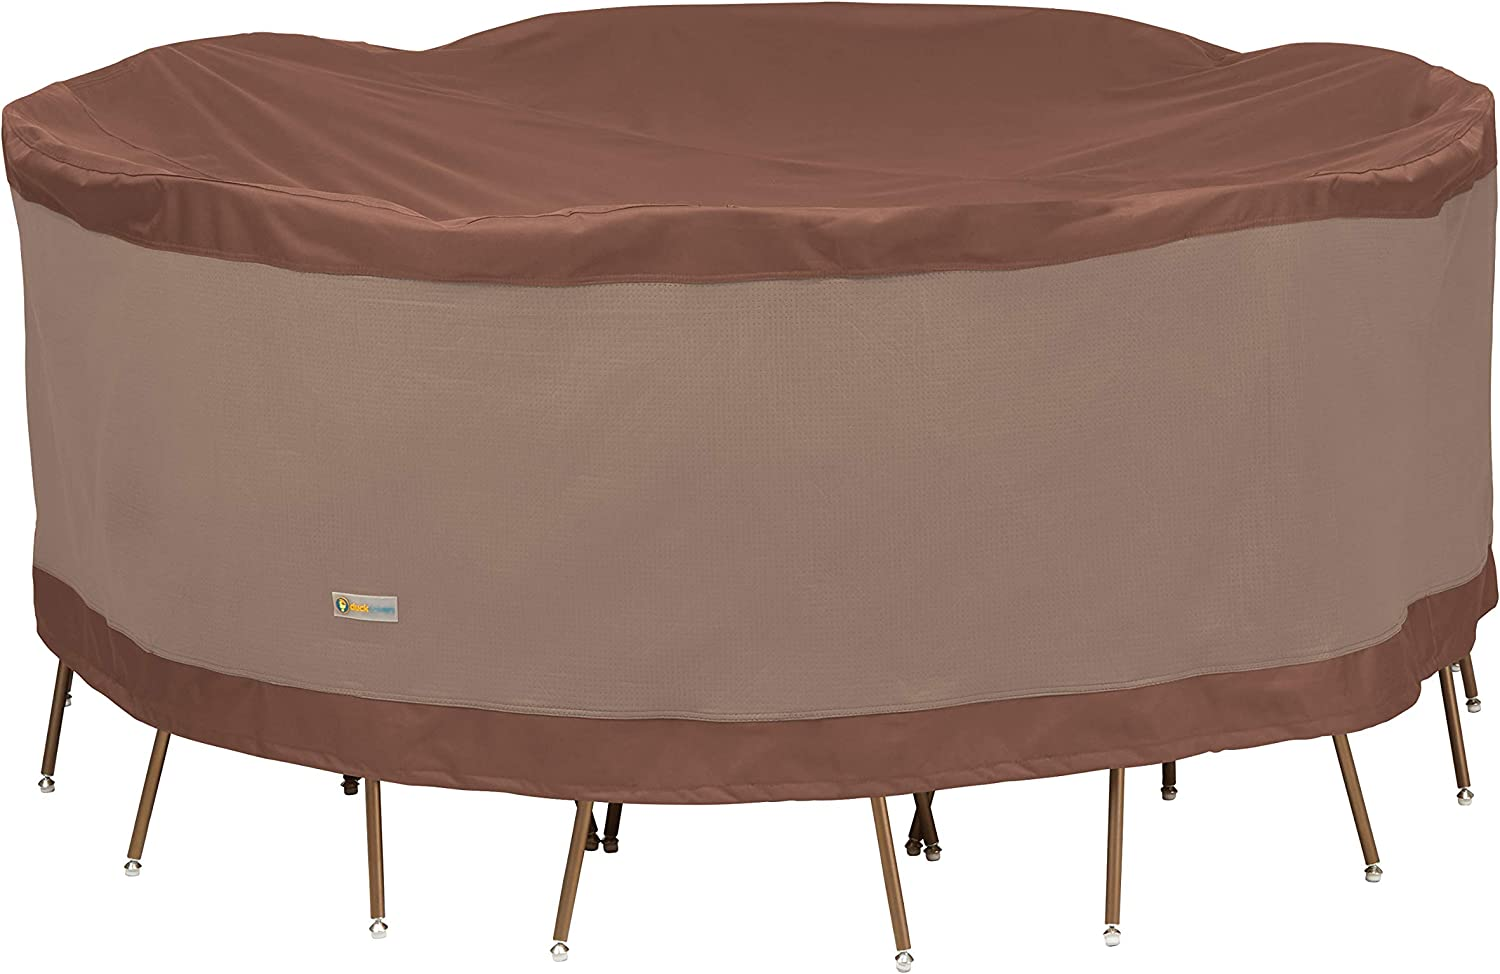 Duck Covers Ultimate Round Patio Table with Chairs Cover, 76-Inch